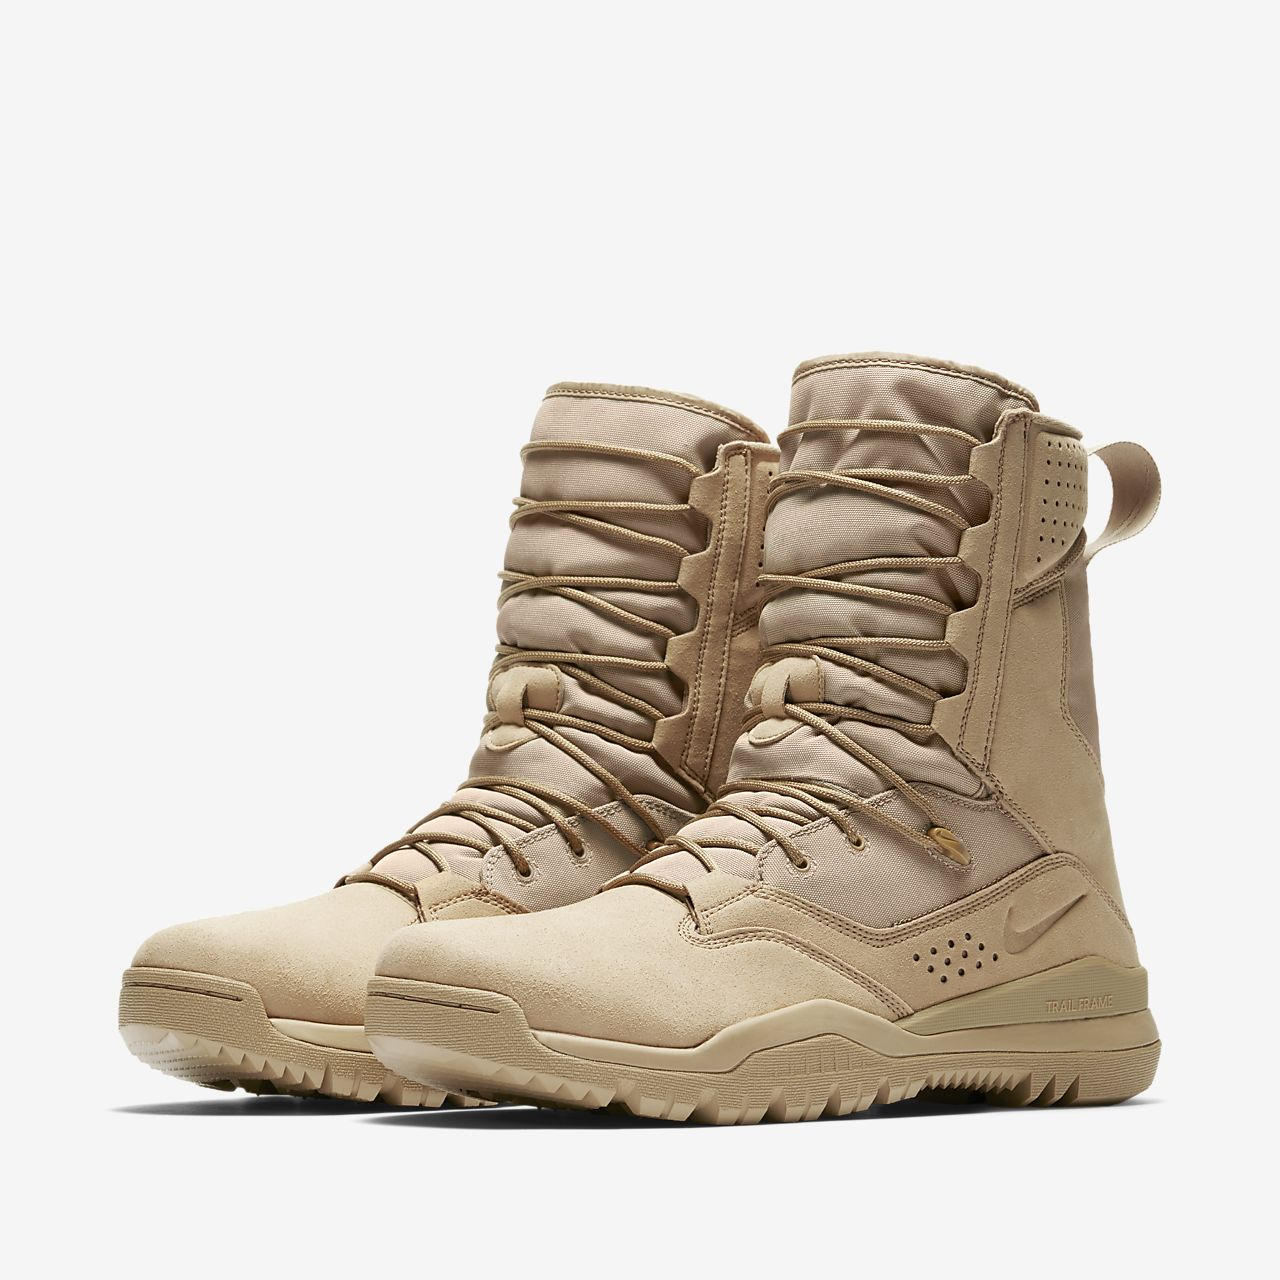 Nike SFB Field 2 20cm (approx.) Tactical Boot